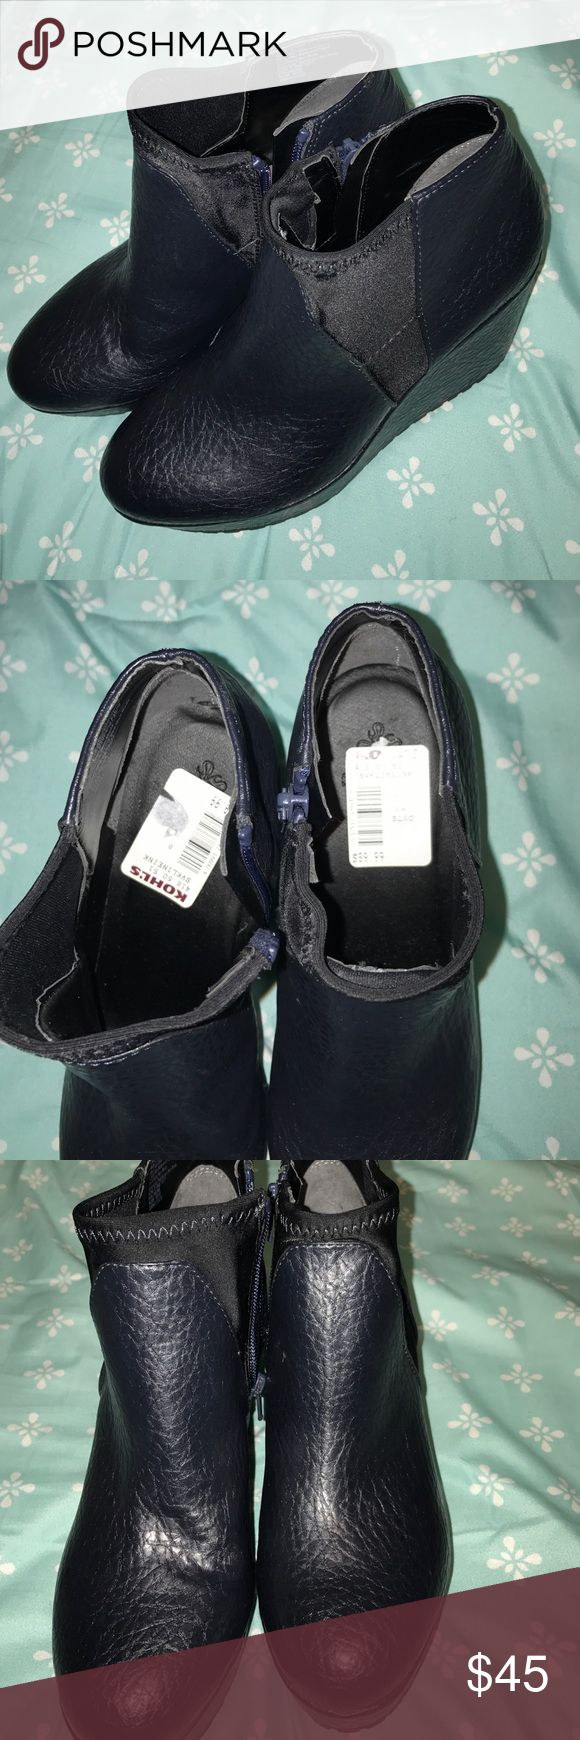 Black wedge ankle booties Brand New! Only tried on, tags still inside the shoe. Very comfortable unknown Shoes Ankle Boots & Booties